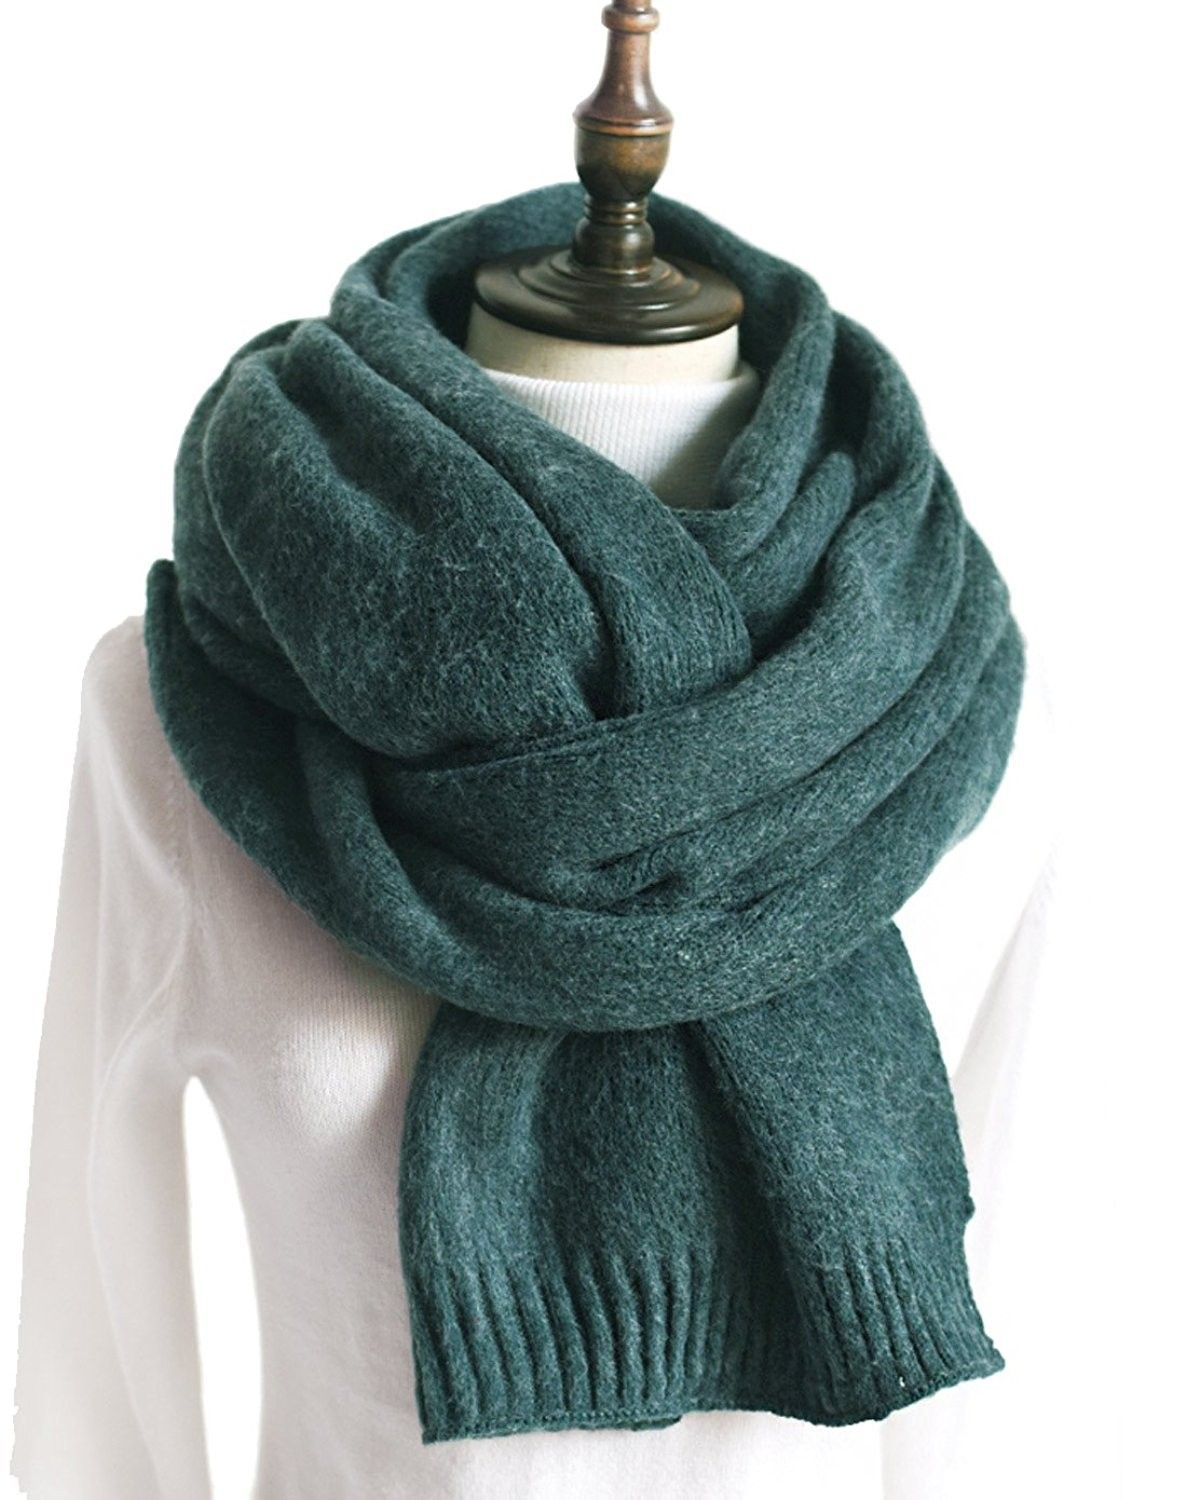 8cf570816601f Women Knit Scarf- Thick Warm Soft Simple Neck Scarves Lambswool Pashmina  Feel - Green - CA1888M8RXO - Scarves & Wraps, Cold Weather Scarves & Wraps # Scarves ...